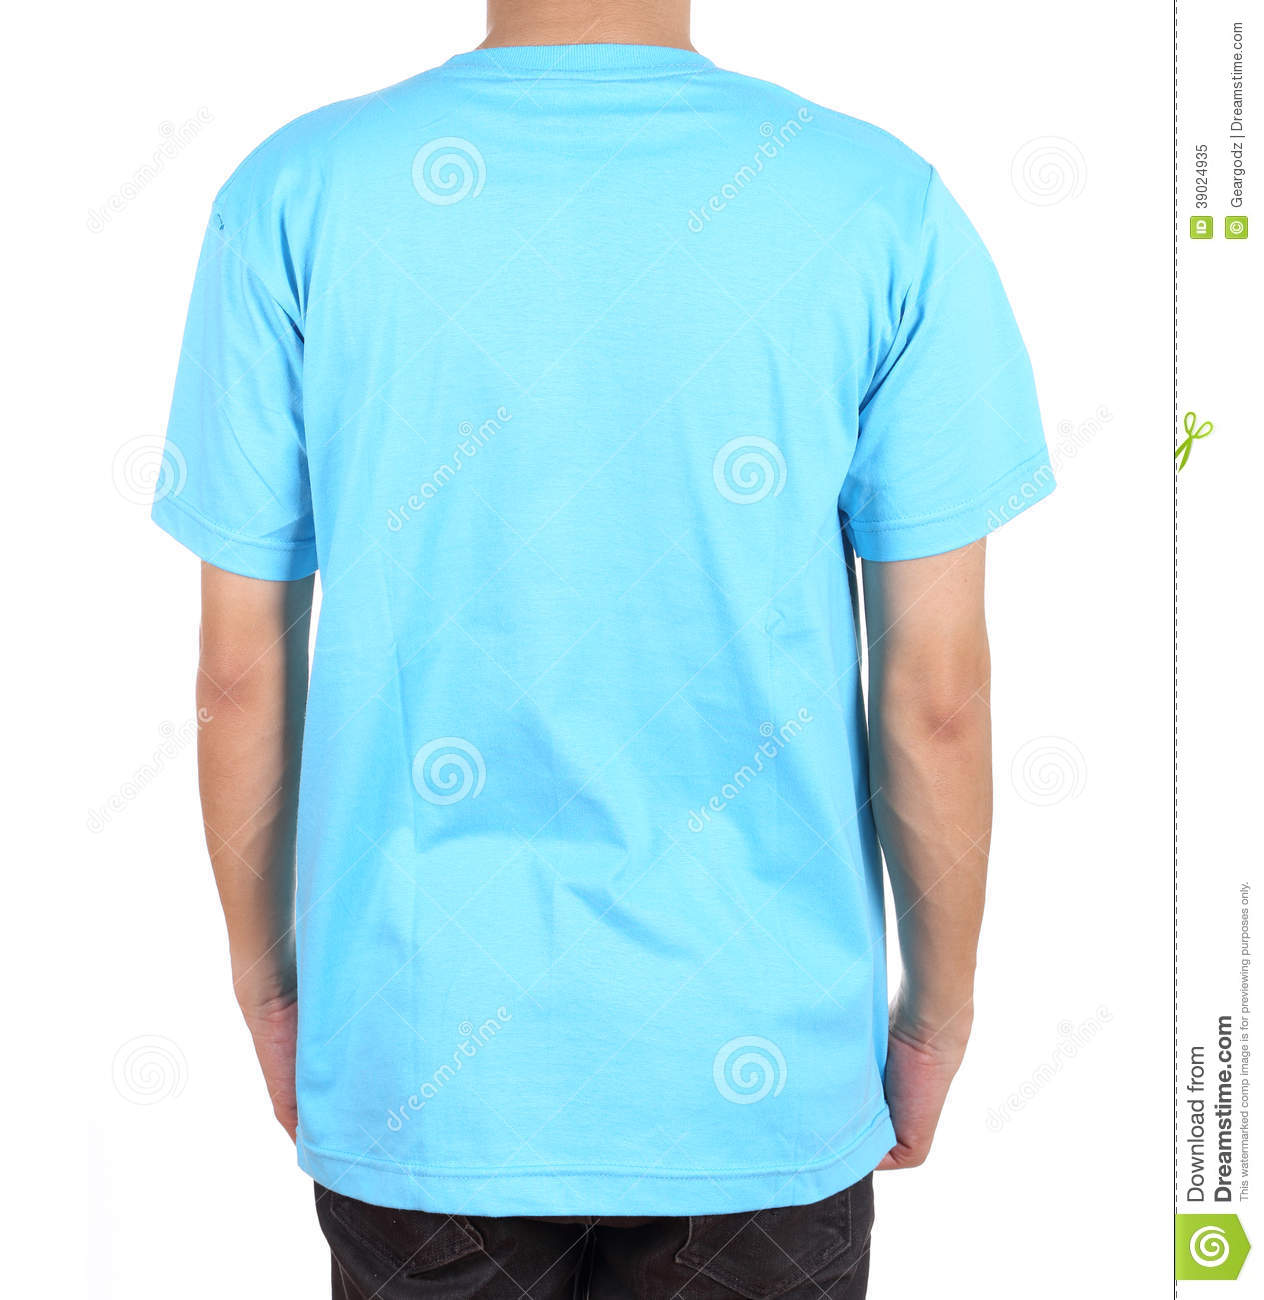 Blank T Shirt On Man Back Side Stock Image Image Of